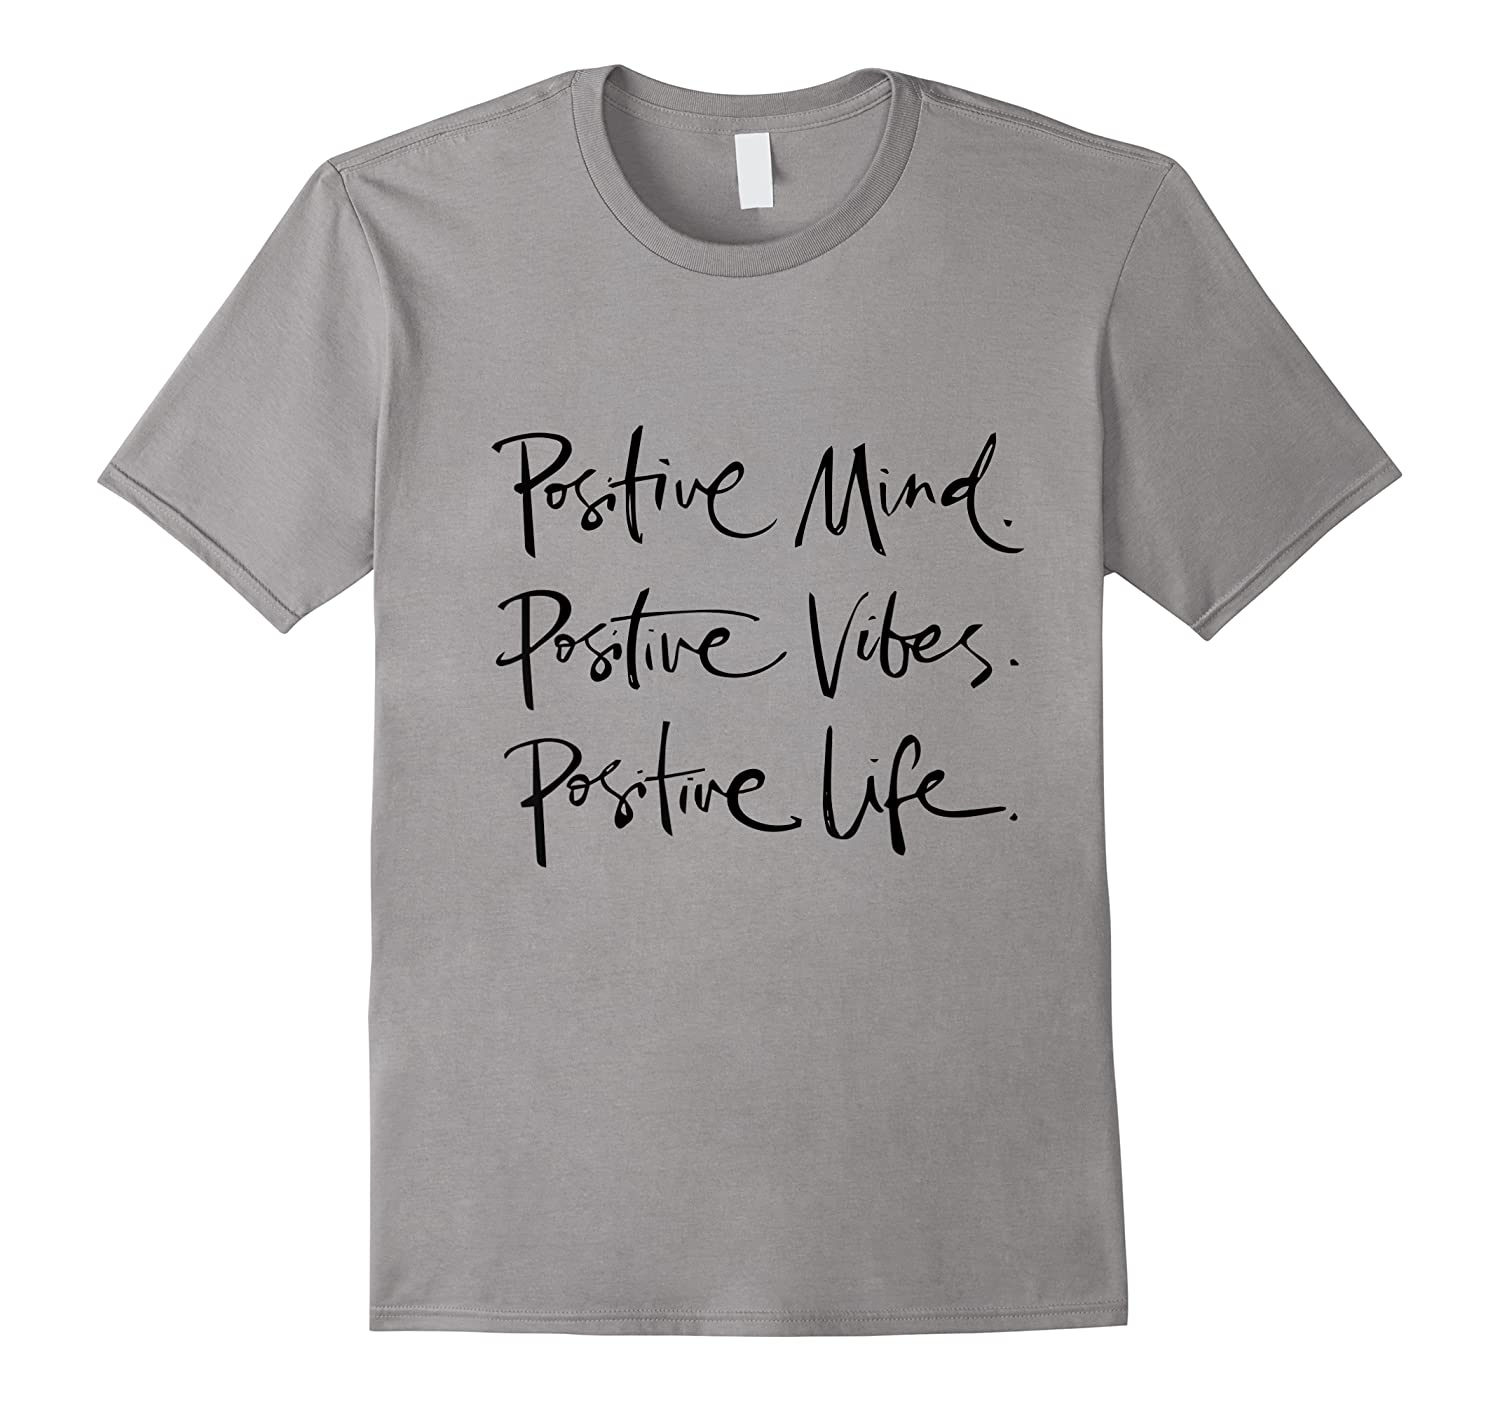 Positive T-shirt Mind Vibes Life Tee Positive Outlook